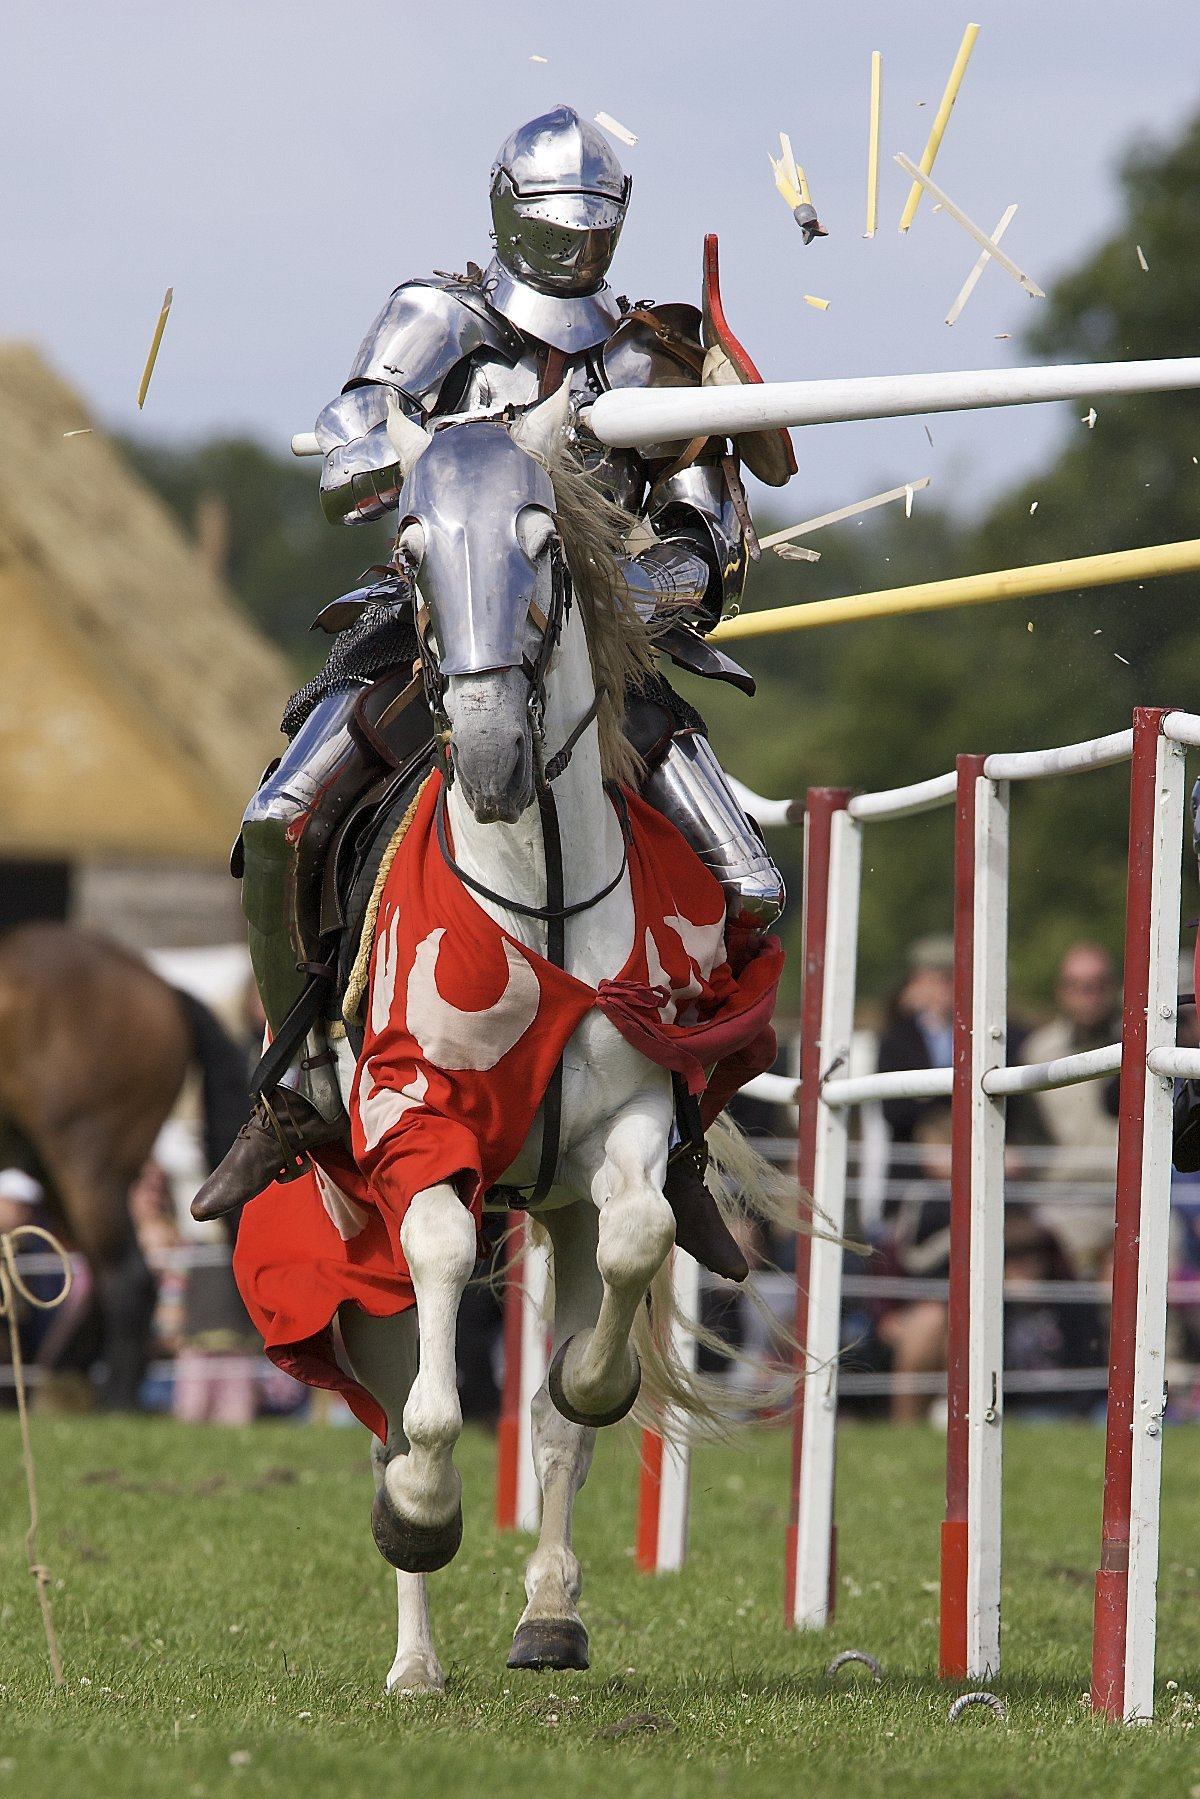 Knights to compete in medieval joust at Eltham Palace